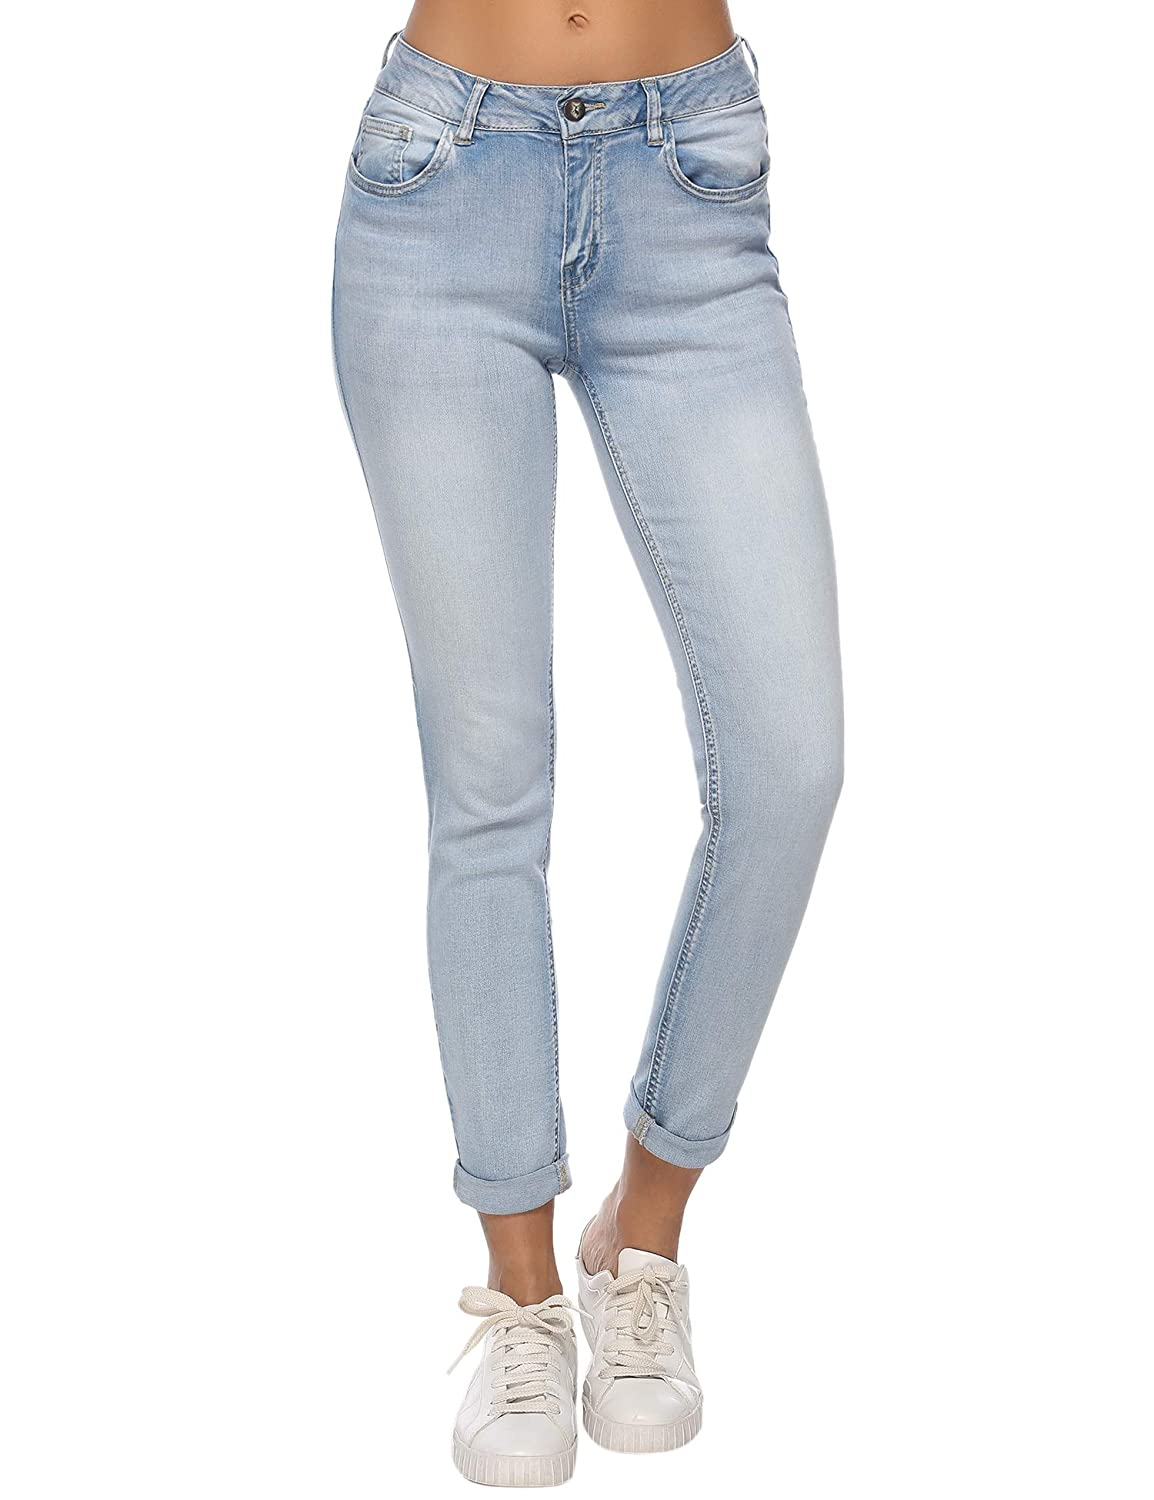 (Rs)amw7176lightwash Resfeber Women's Boyfriend Jeans Distressed Slim Fit Ripped Jeans Comfy Stretch Skinny Jeans